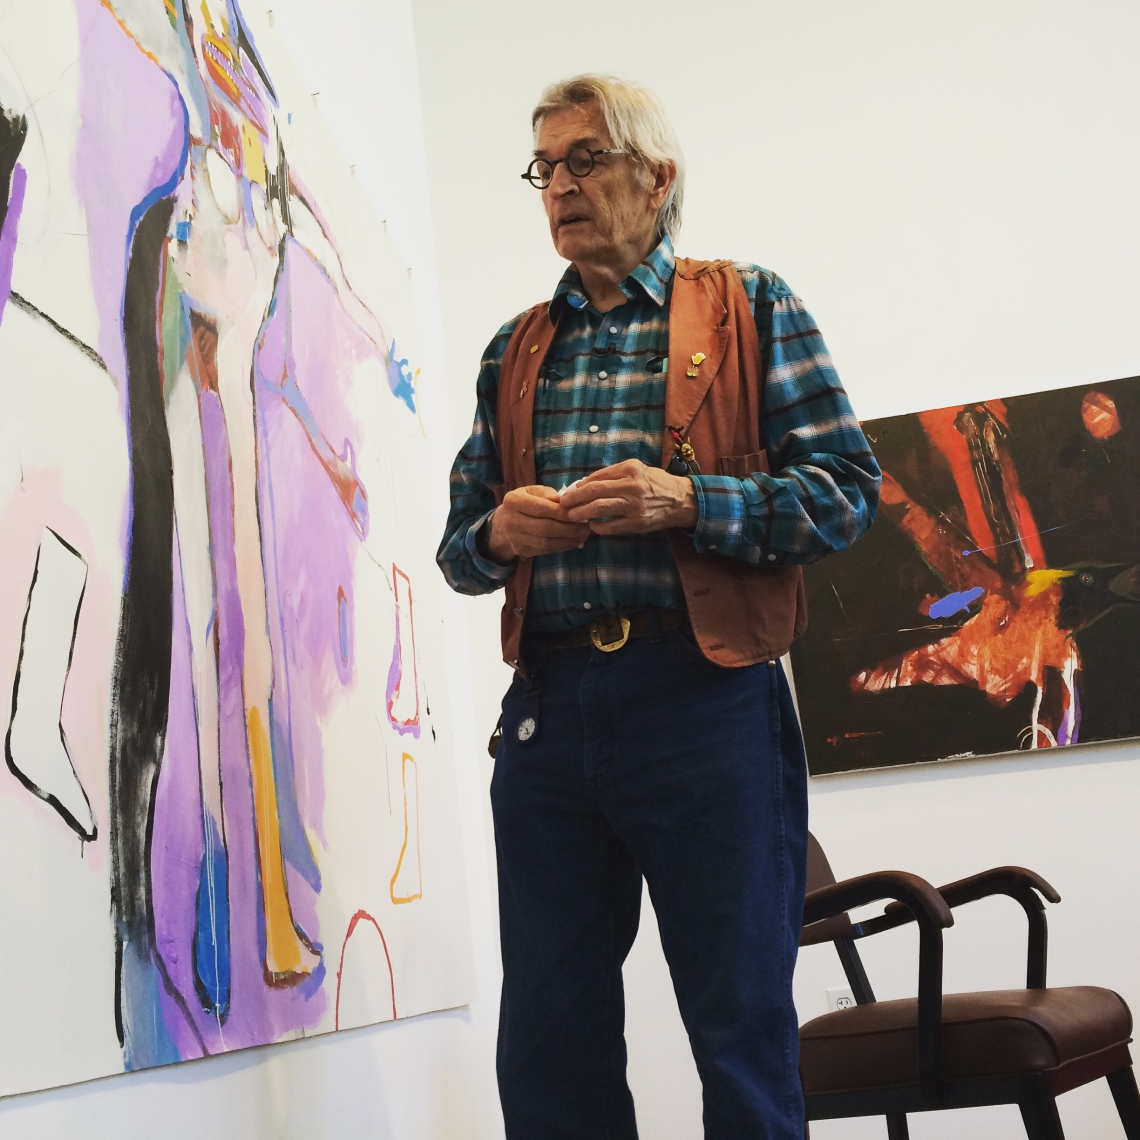 Rick_Bartow_with_his_paintings_at_Froelick_Gallery,_Portland,_Oregon